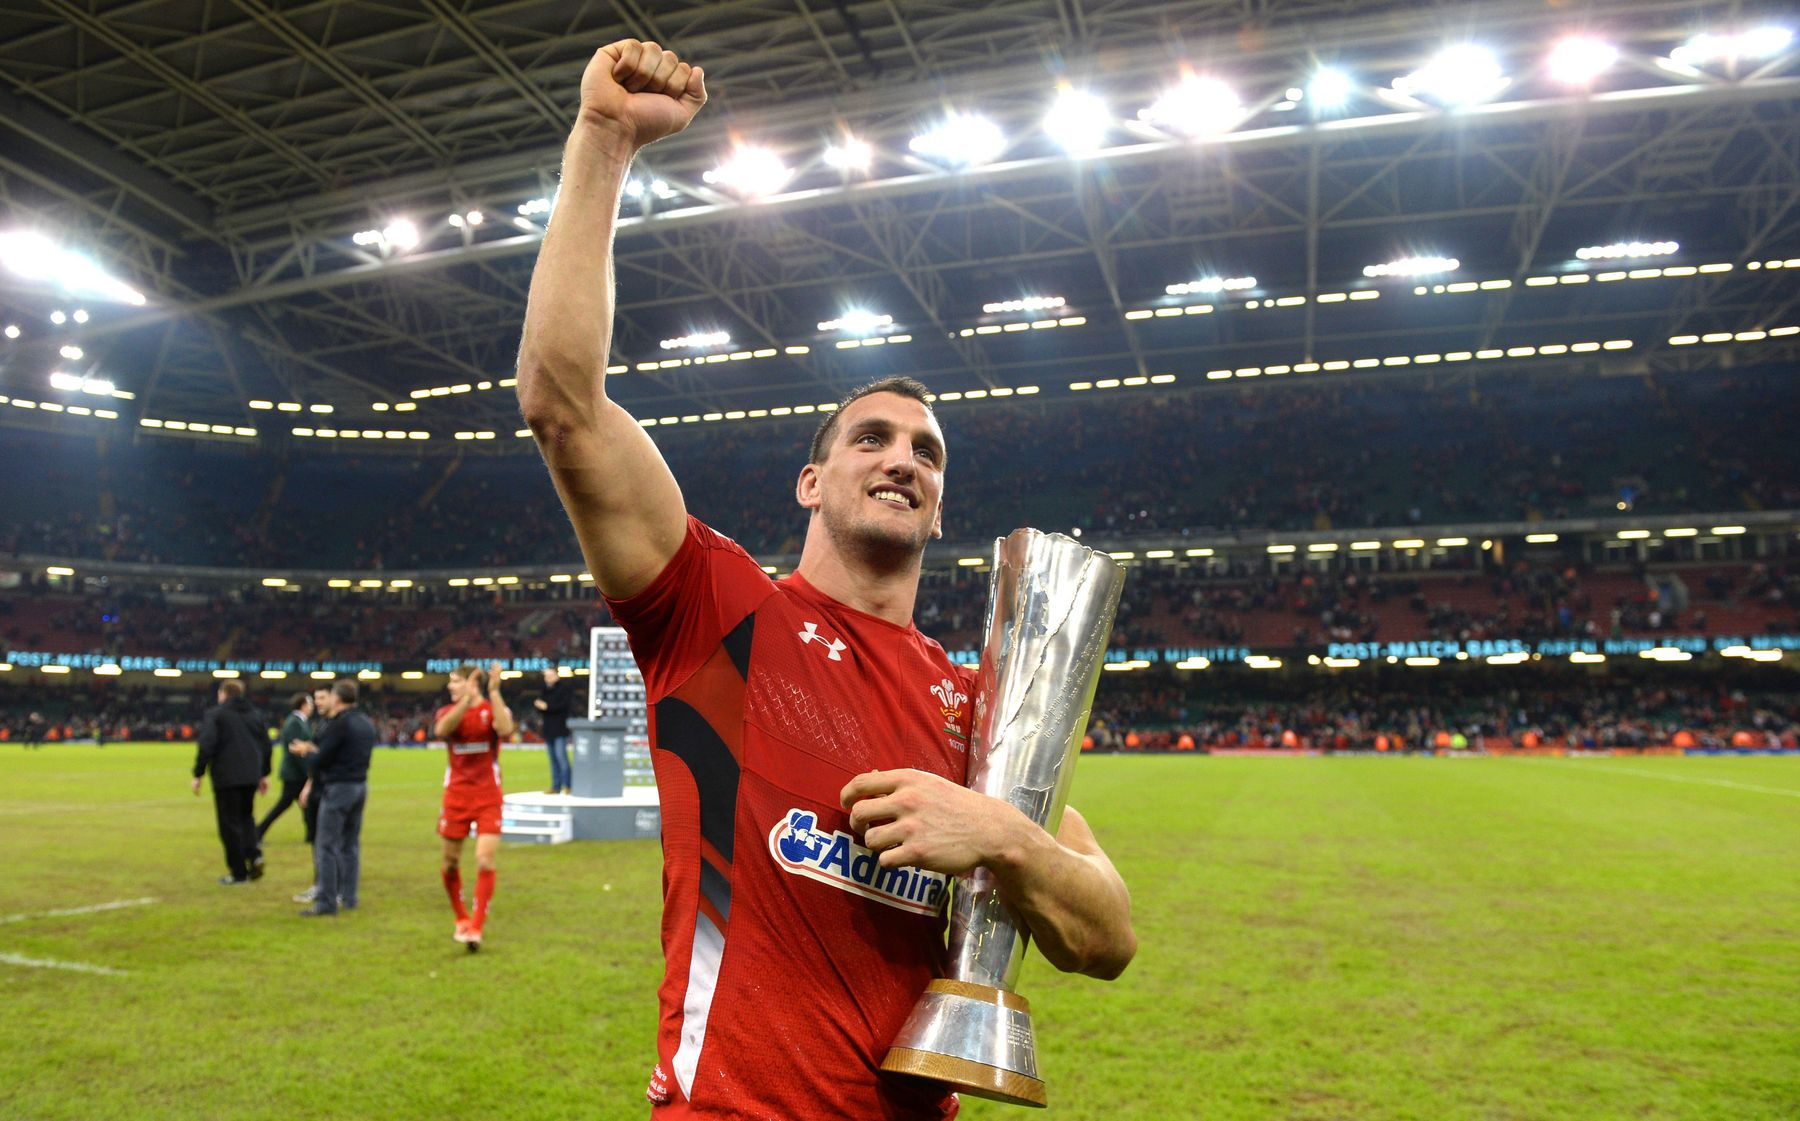 Gatland's squad savour first win over South Africa